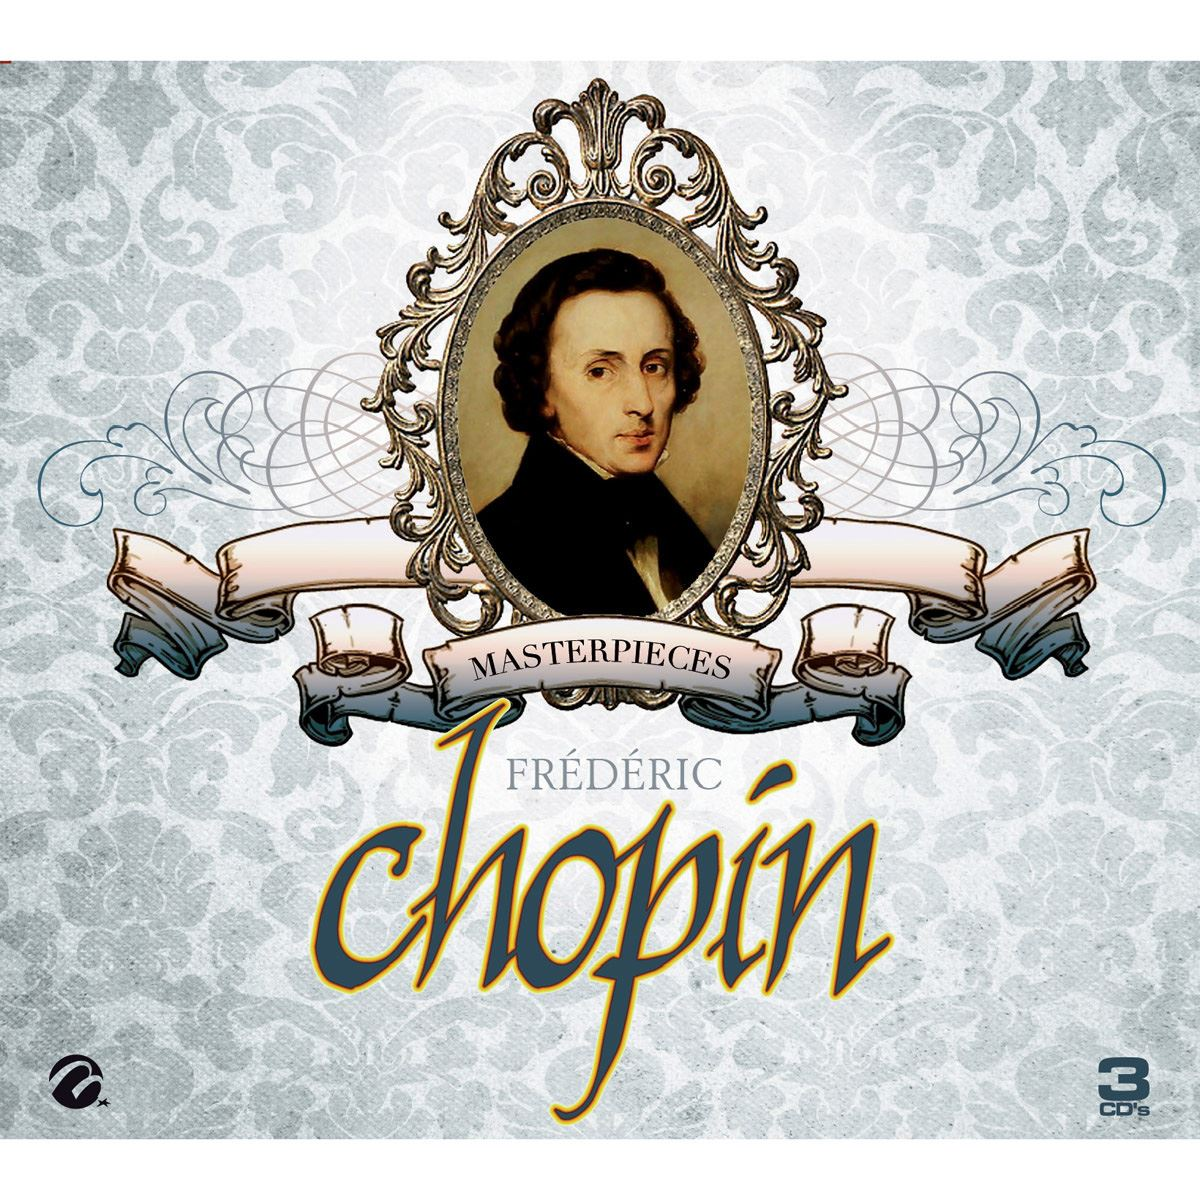 CD3 Frederic Chopin Masterpieces